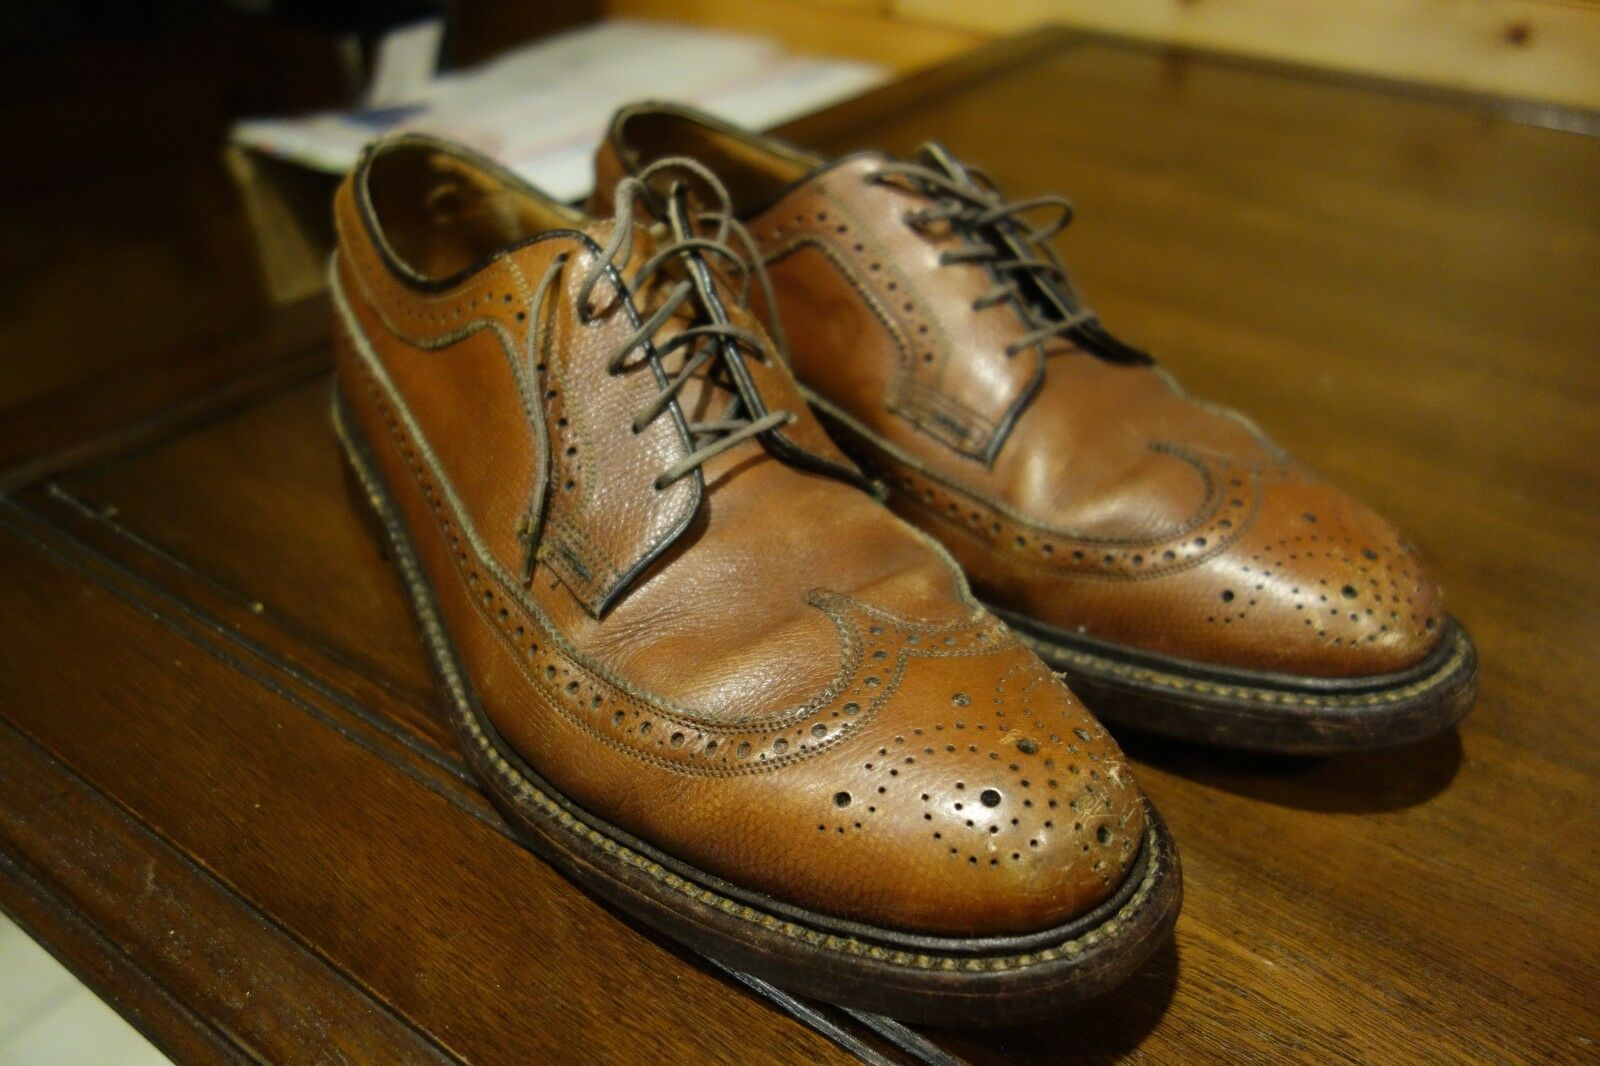 Florsheim Imperial 5 Nail Nail Nail V Cleat Brown Pebble Grain Long Wing Tip shoes 8.5 C 0188ce